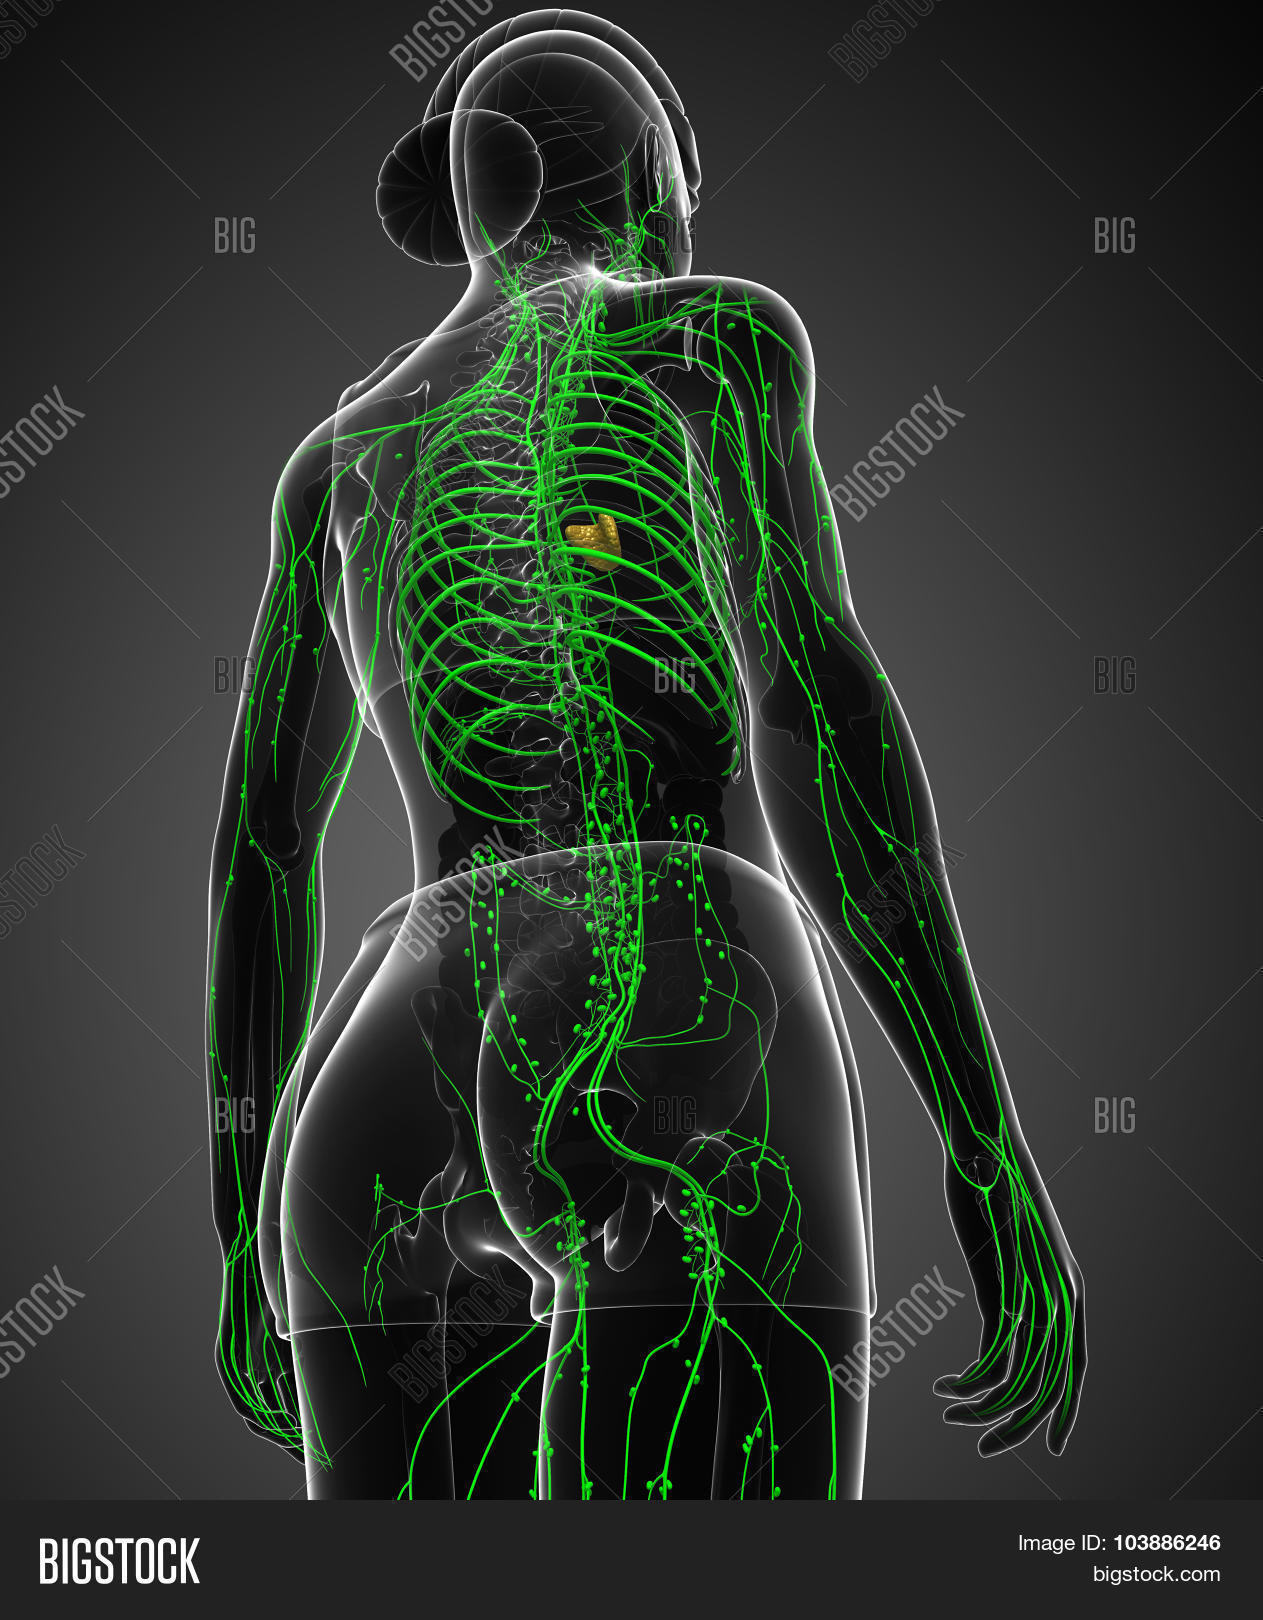 Lymphatic System Image Photo Free Trial Bigstock